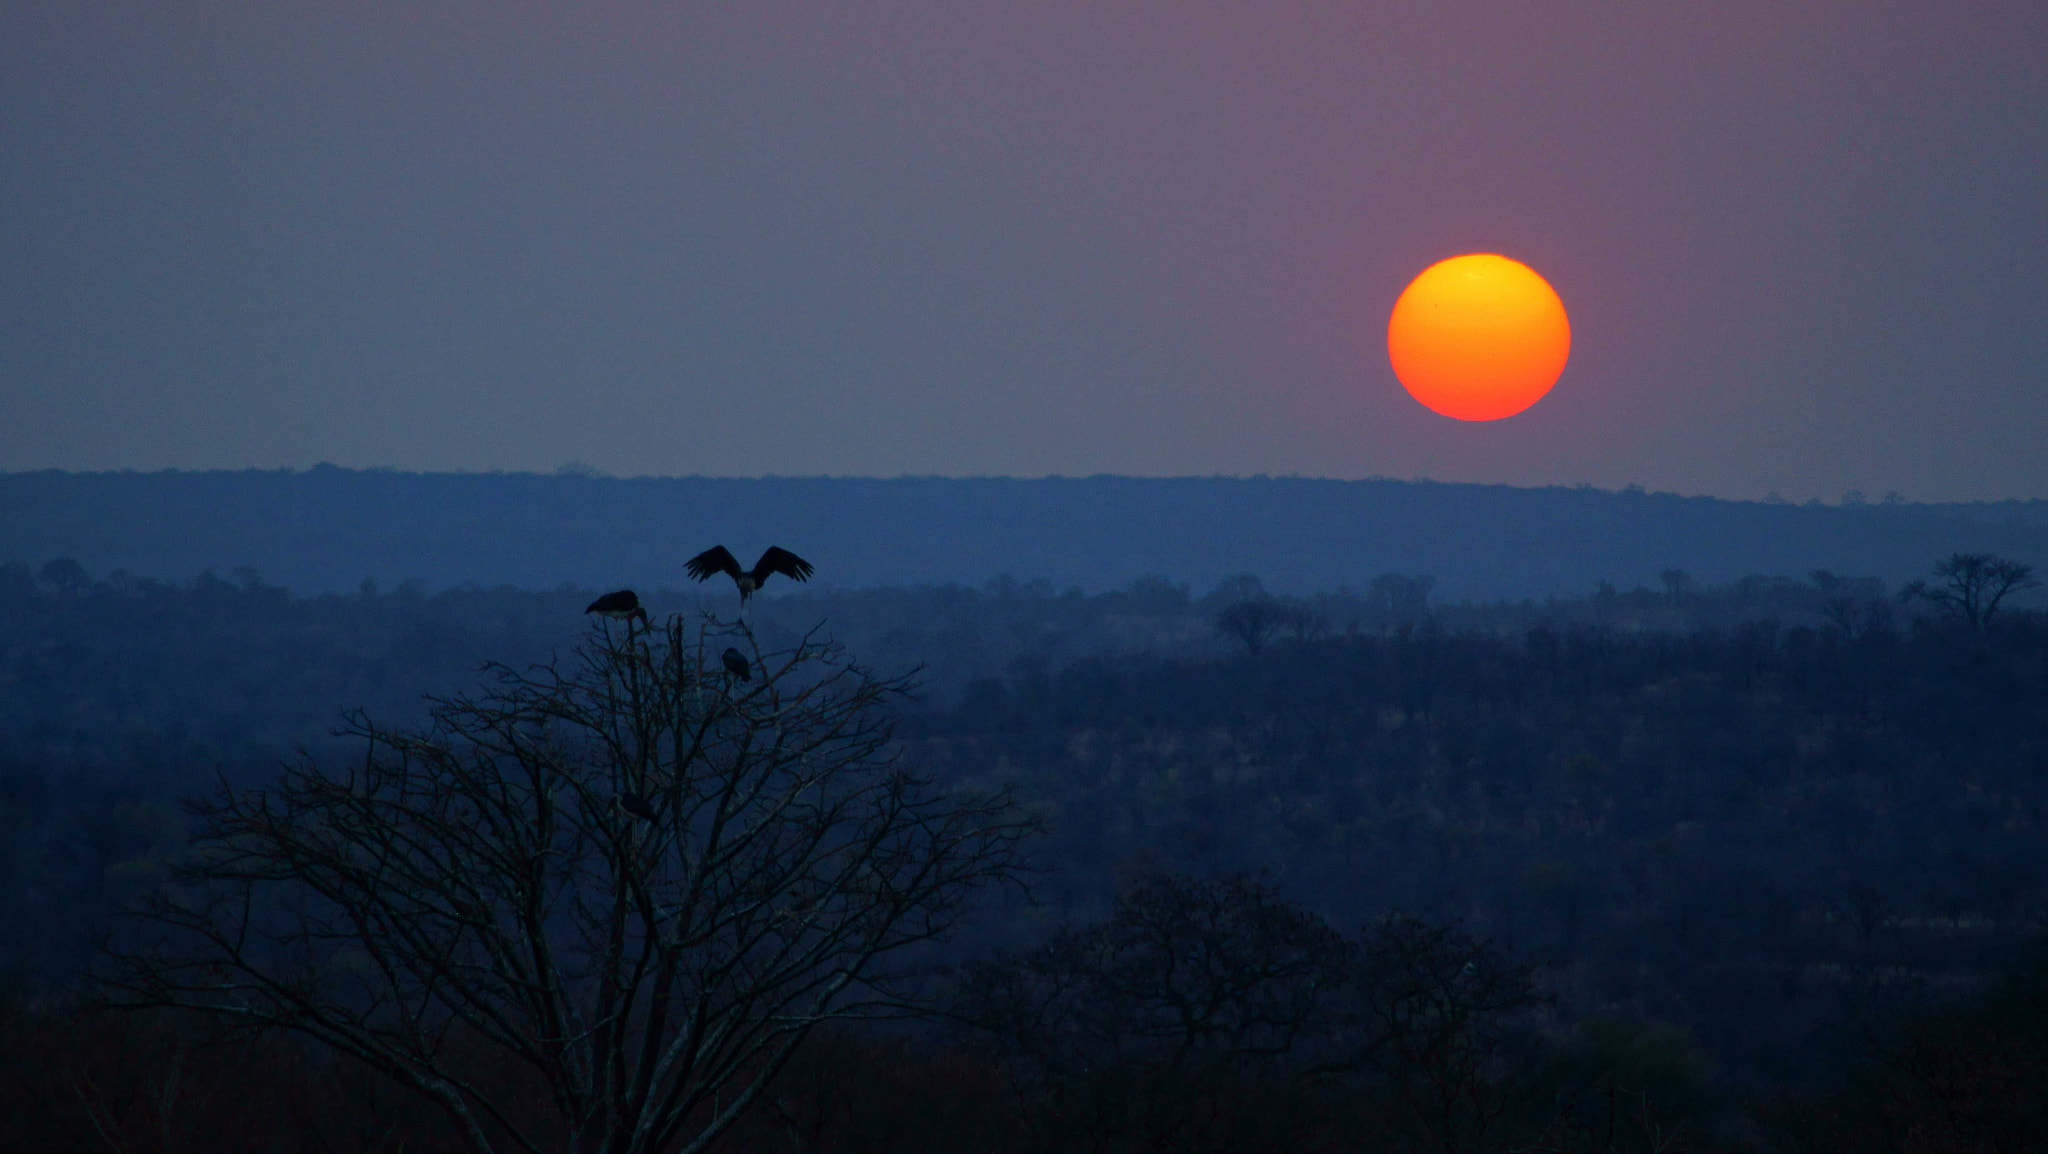 Photograph Zimbabwean Sunset by Patrick Marcoux on 500px